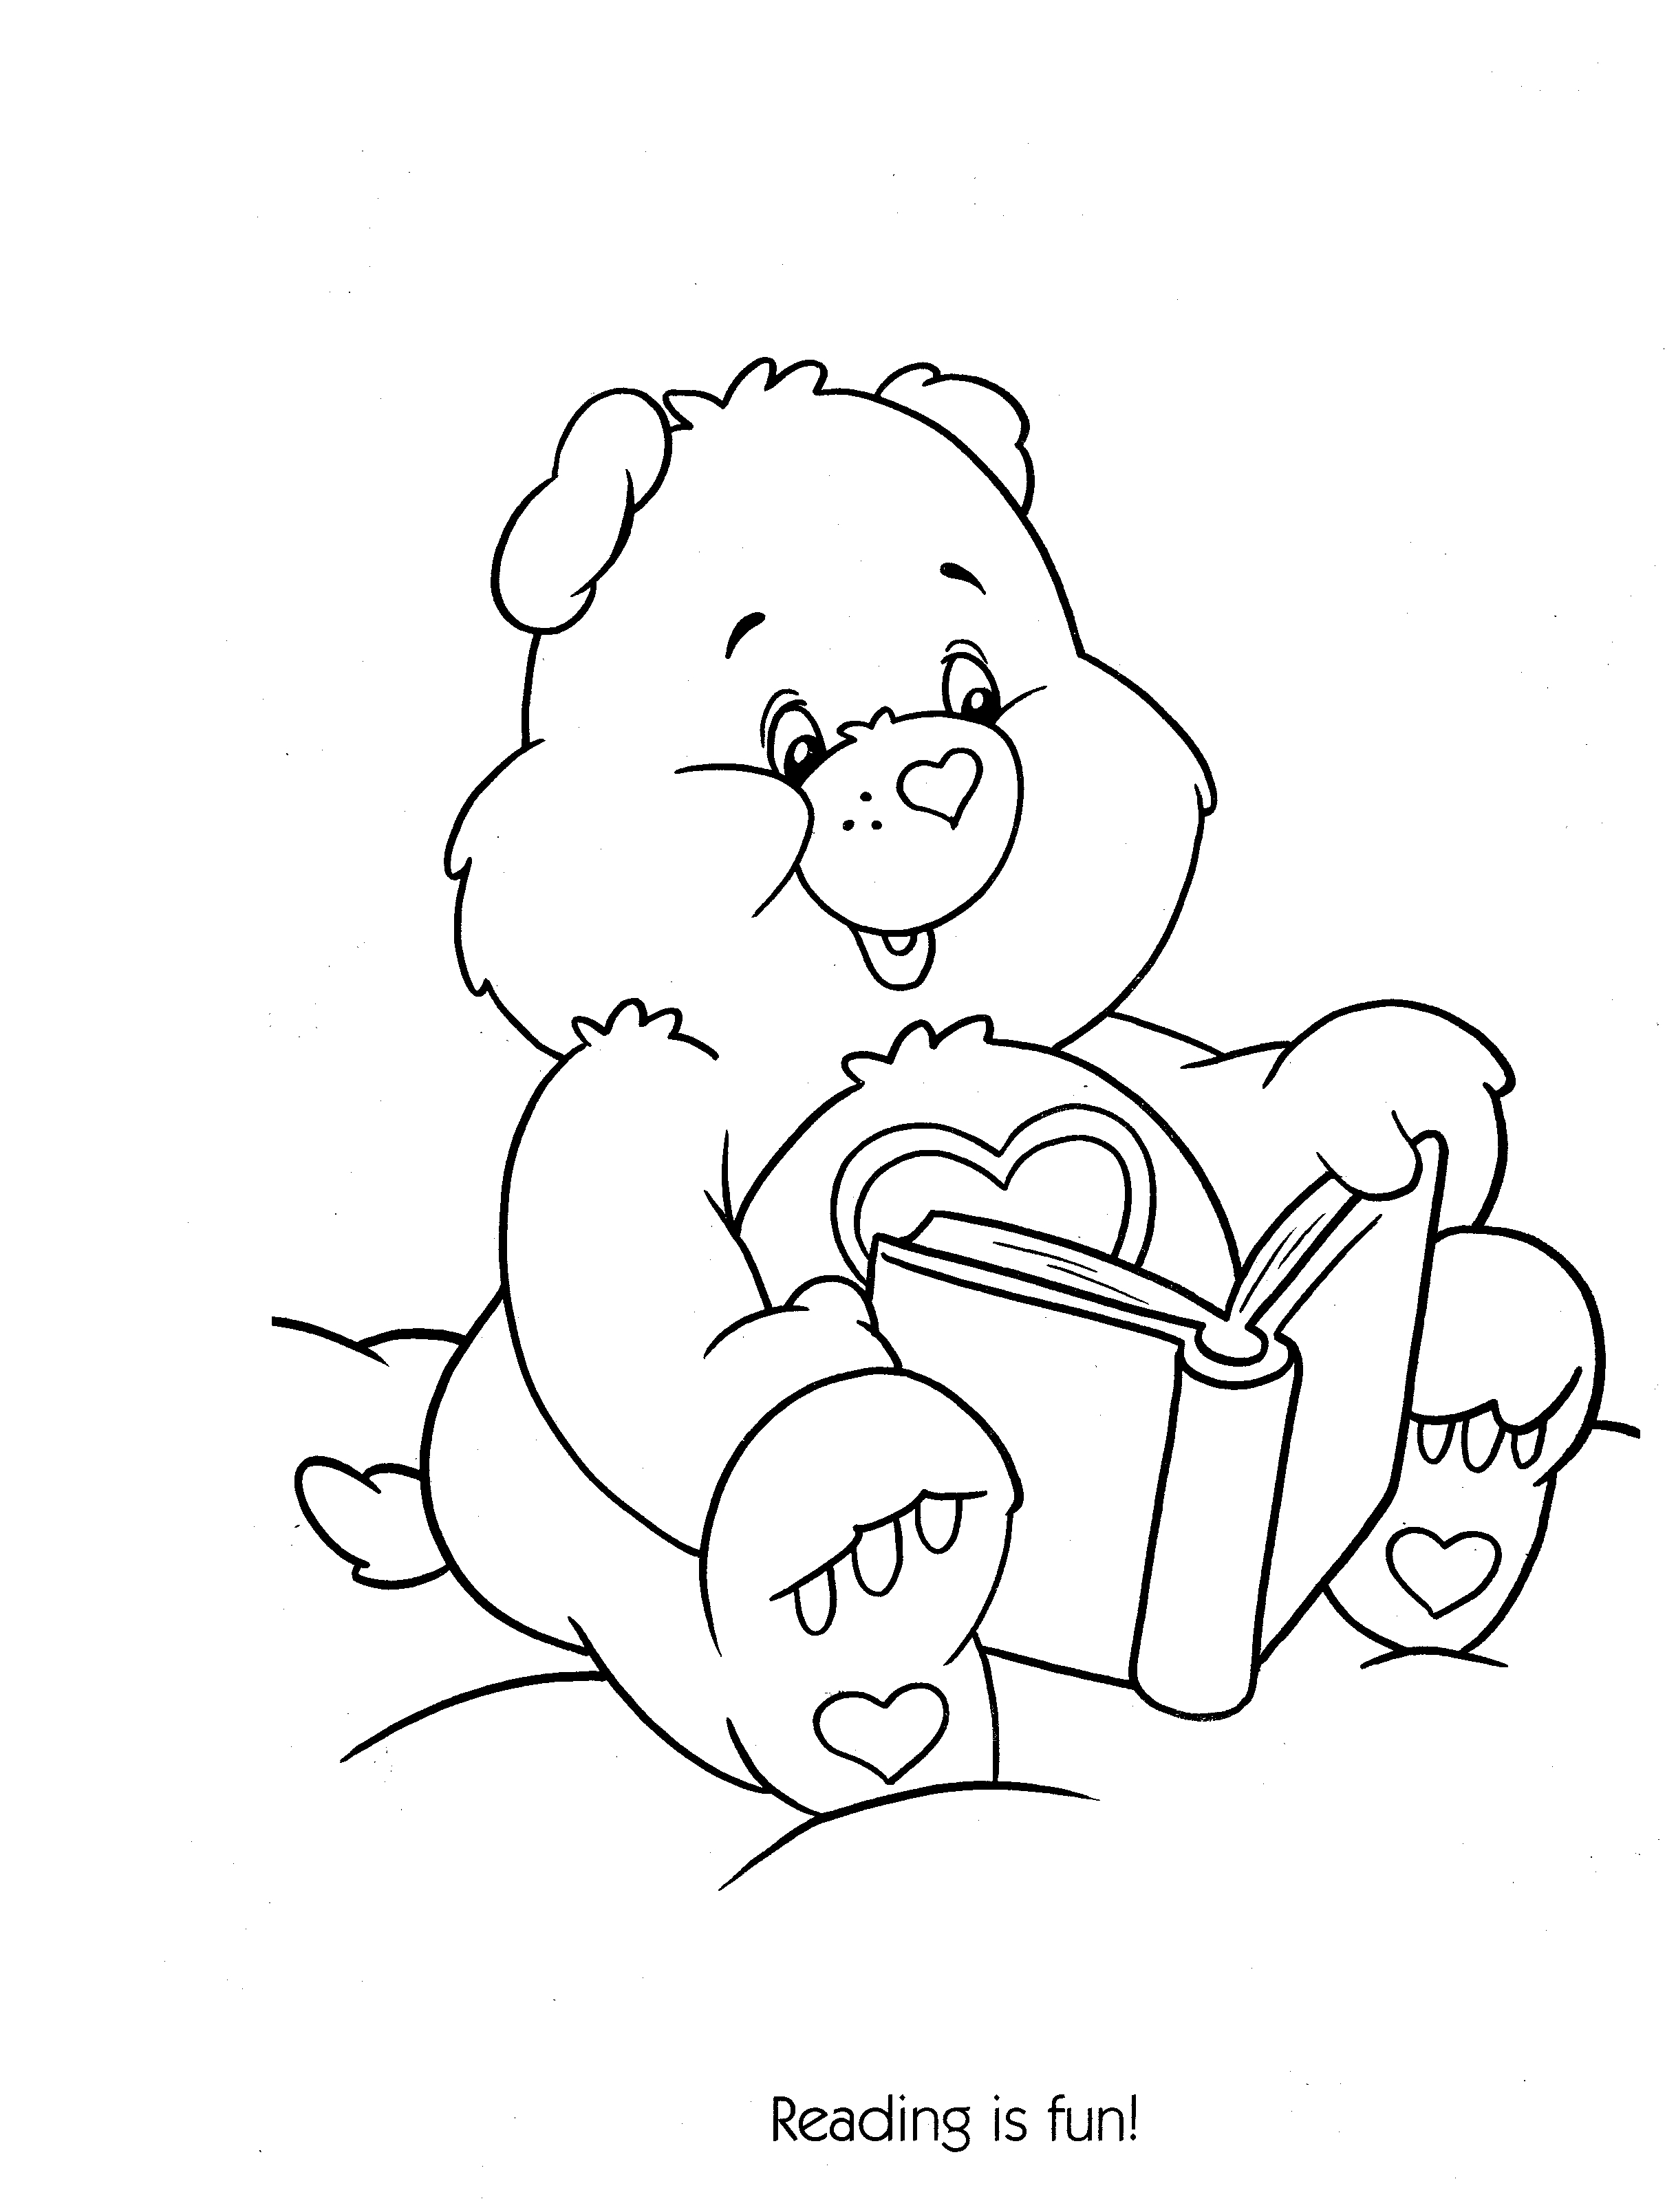 hugs and kisses coloring pages - photo#15